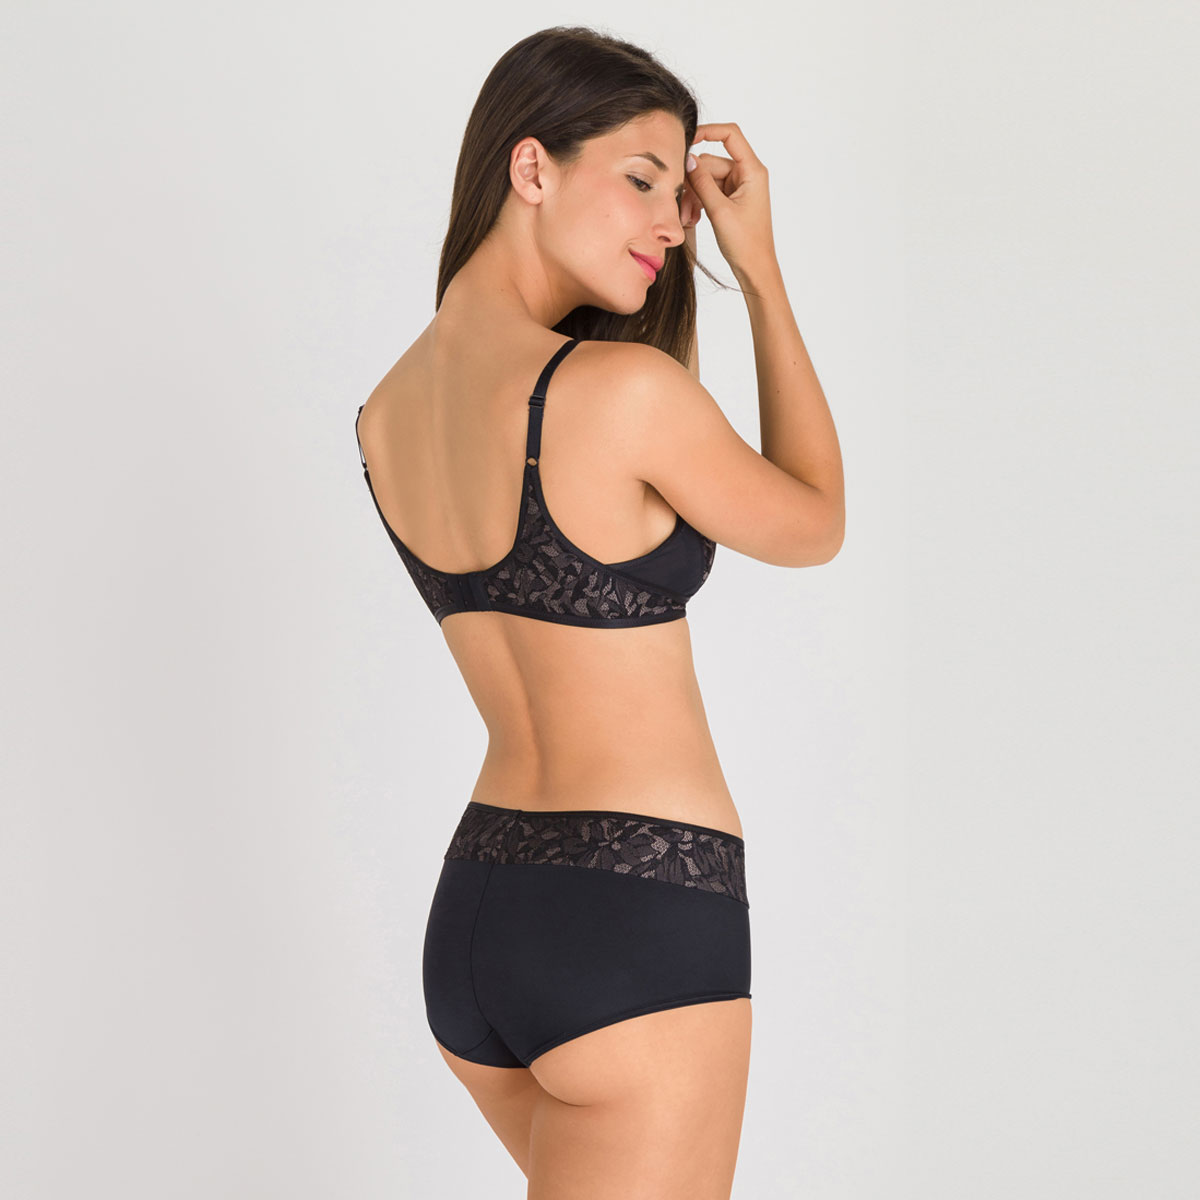 Shorty noir gris - Ideal Beauty Lace, , PLAYTEX